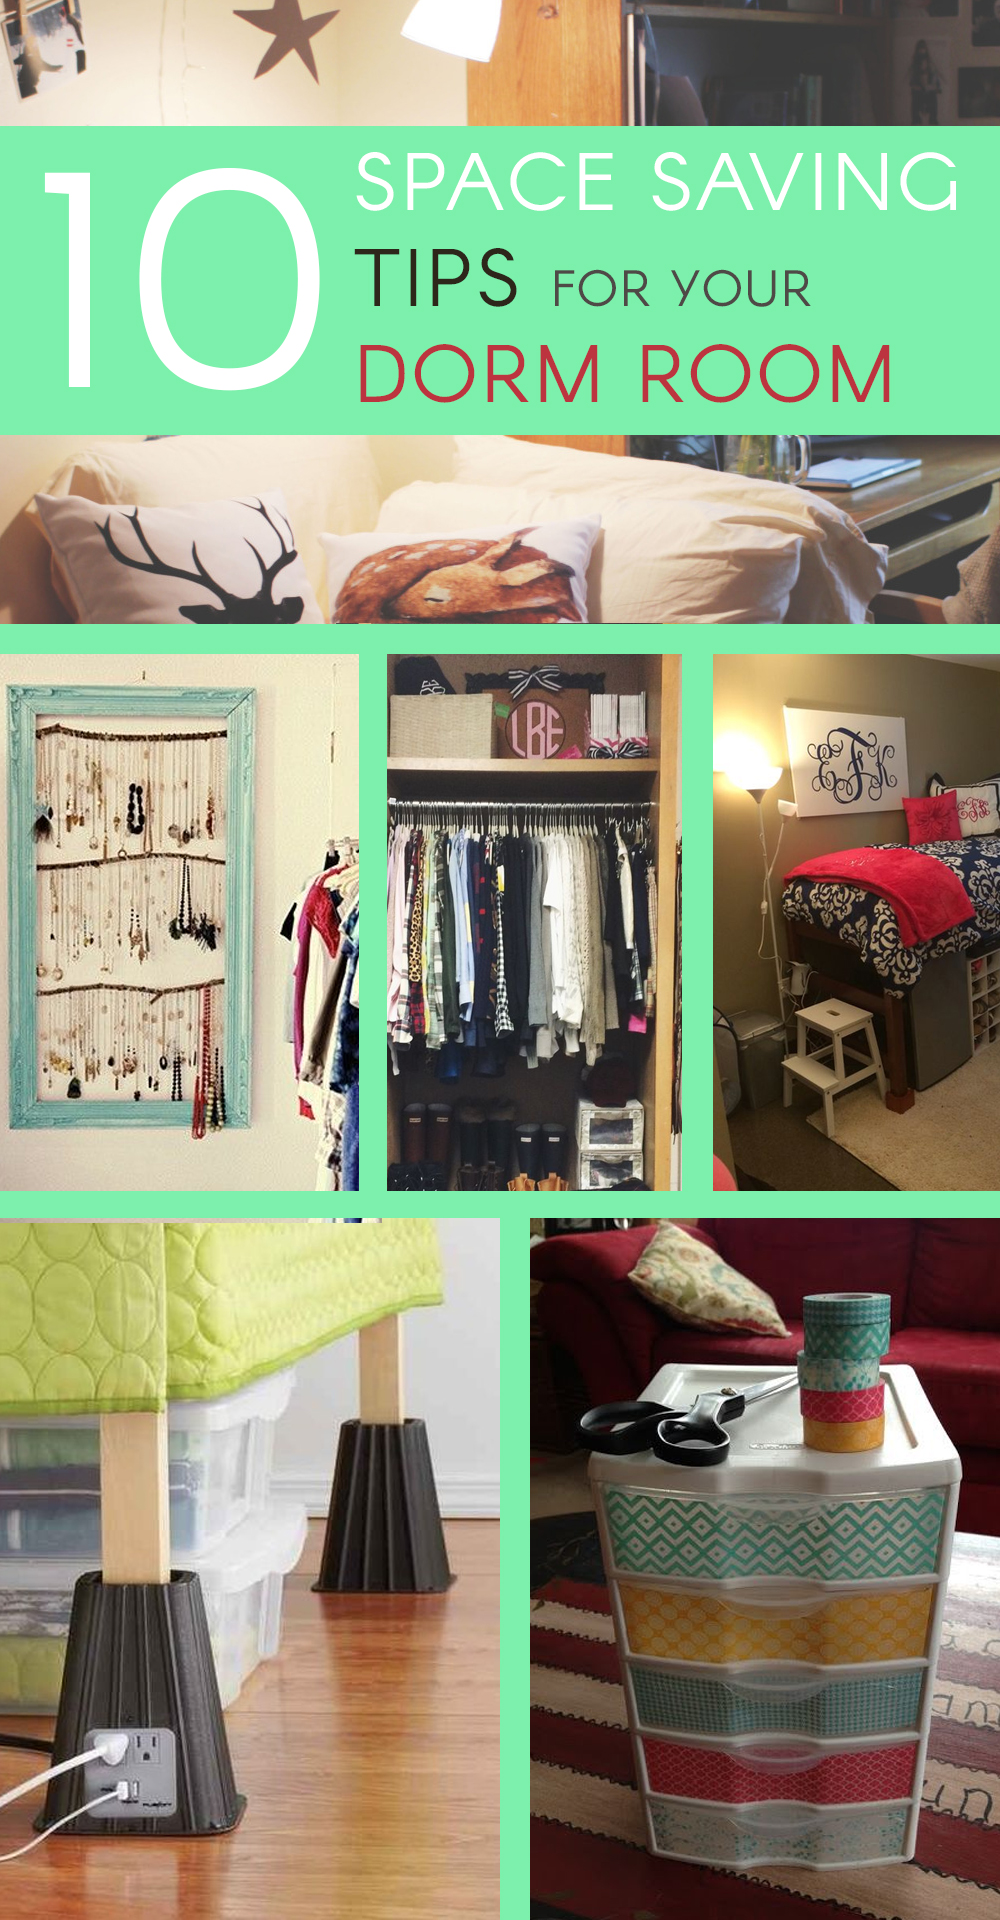 Dorm Room Storage: 10 Space Saving Tips For Your Dorm Room